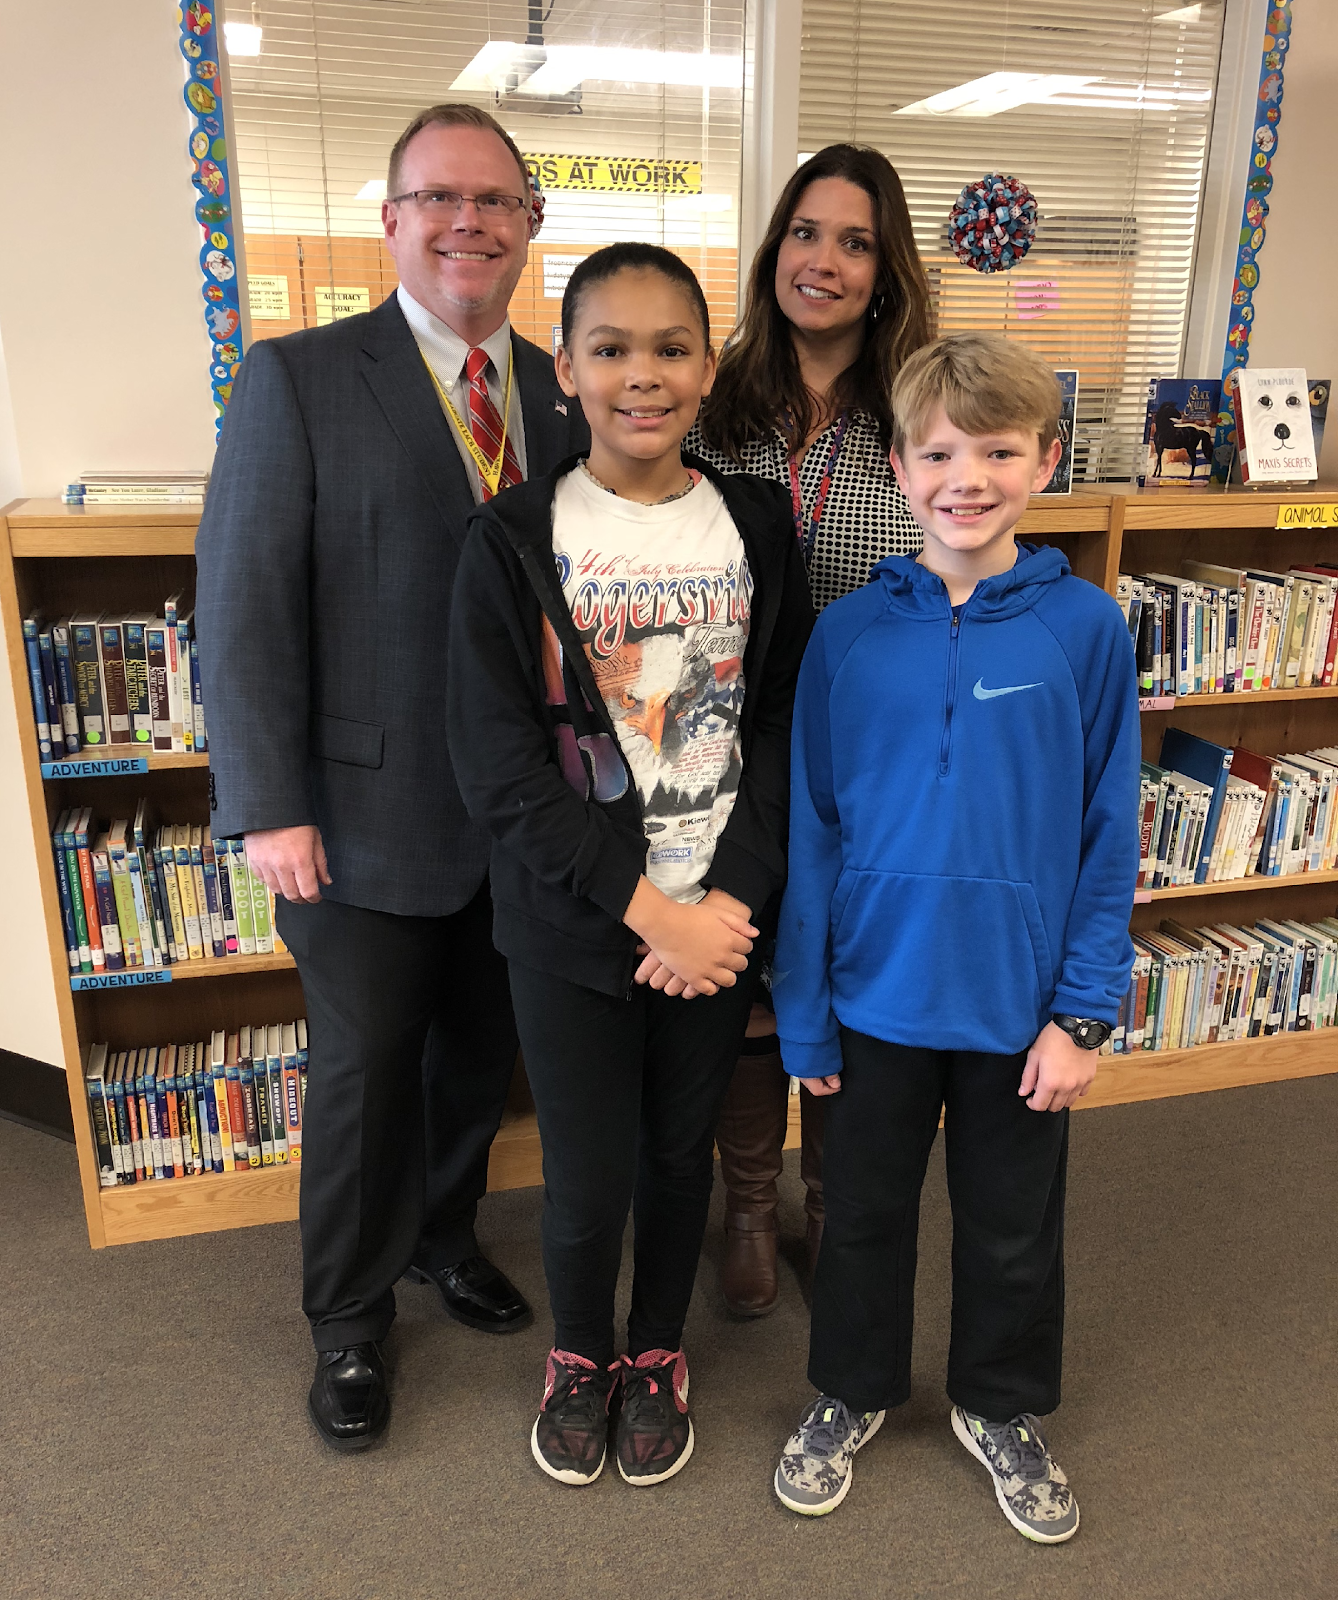 Aniyah Bandy, Clay Houck, teacher sponsor Ms. Stephanie Rebuck, and Attendance Supervisor Greg Sturgill.